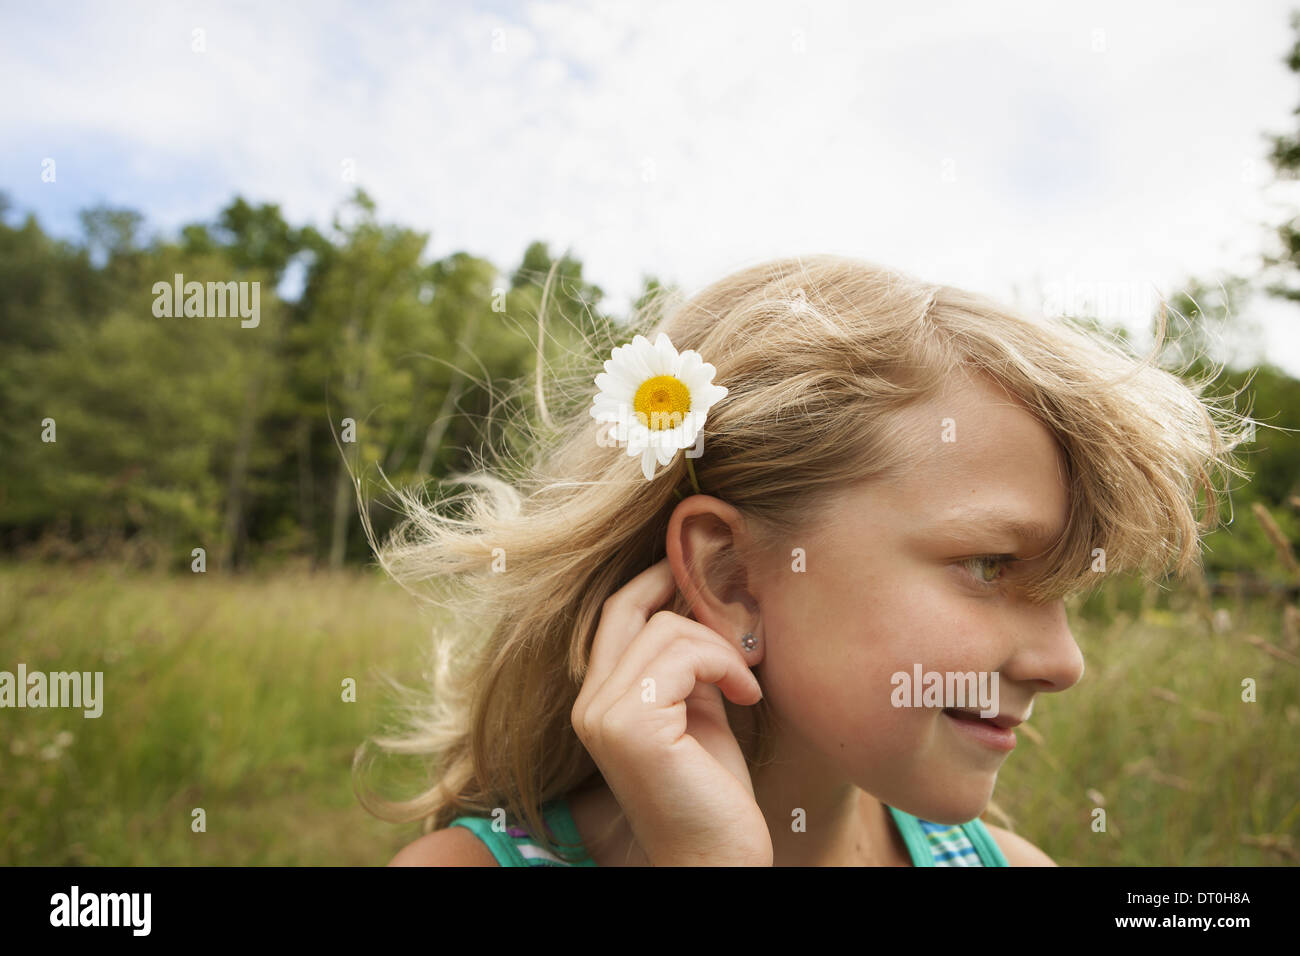 Flower behind ear stock photos flower behind ear stock images alamy new york state usa young girl outside daisy flower behind ear stock image izmirmasajfo